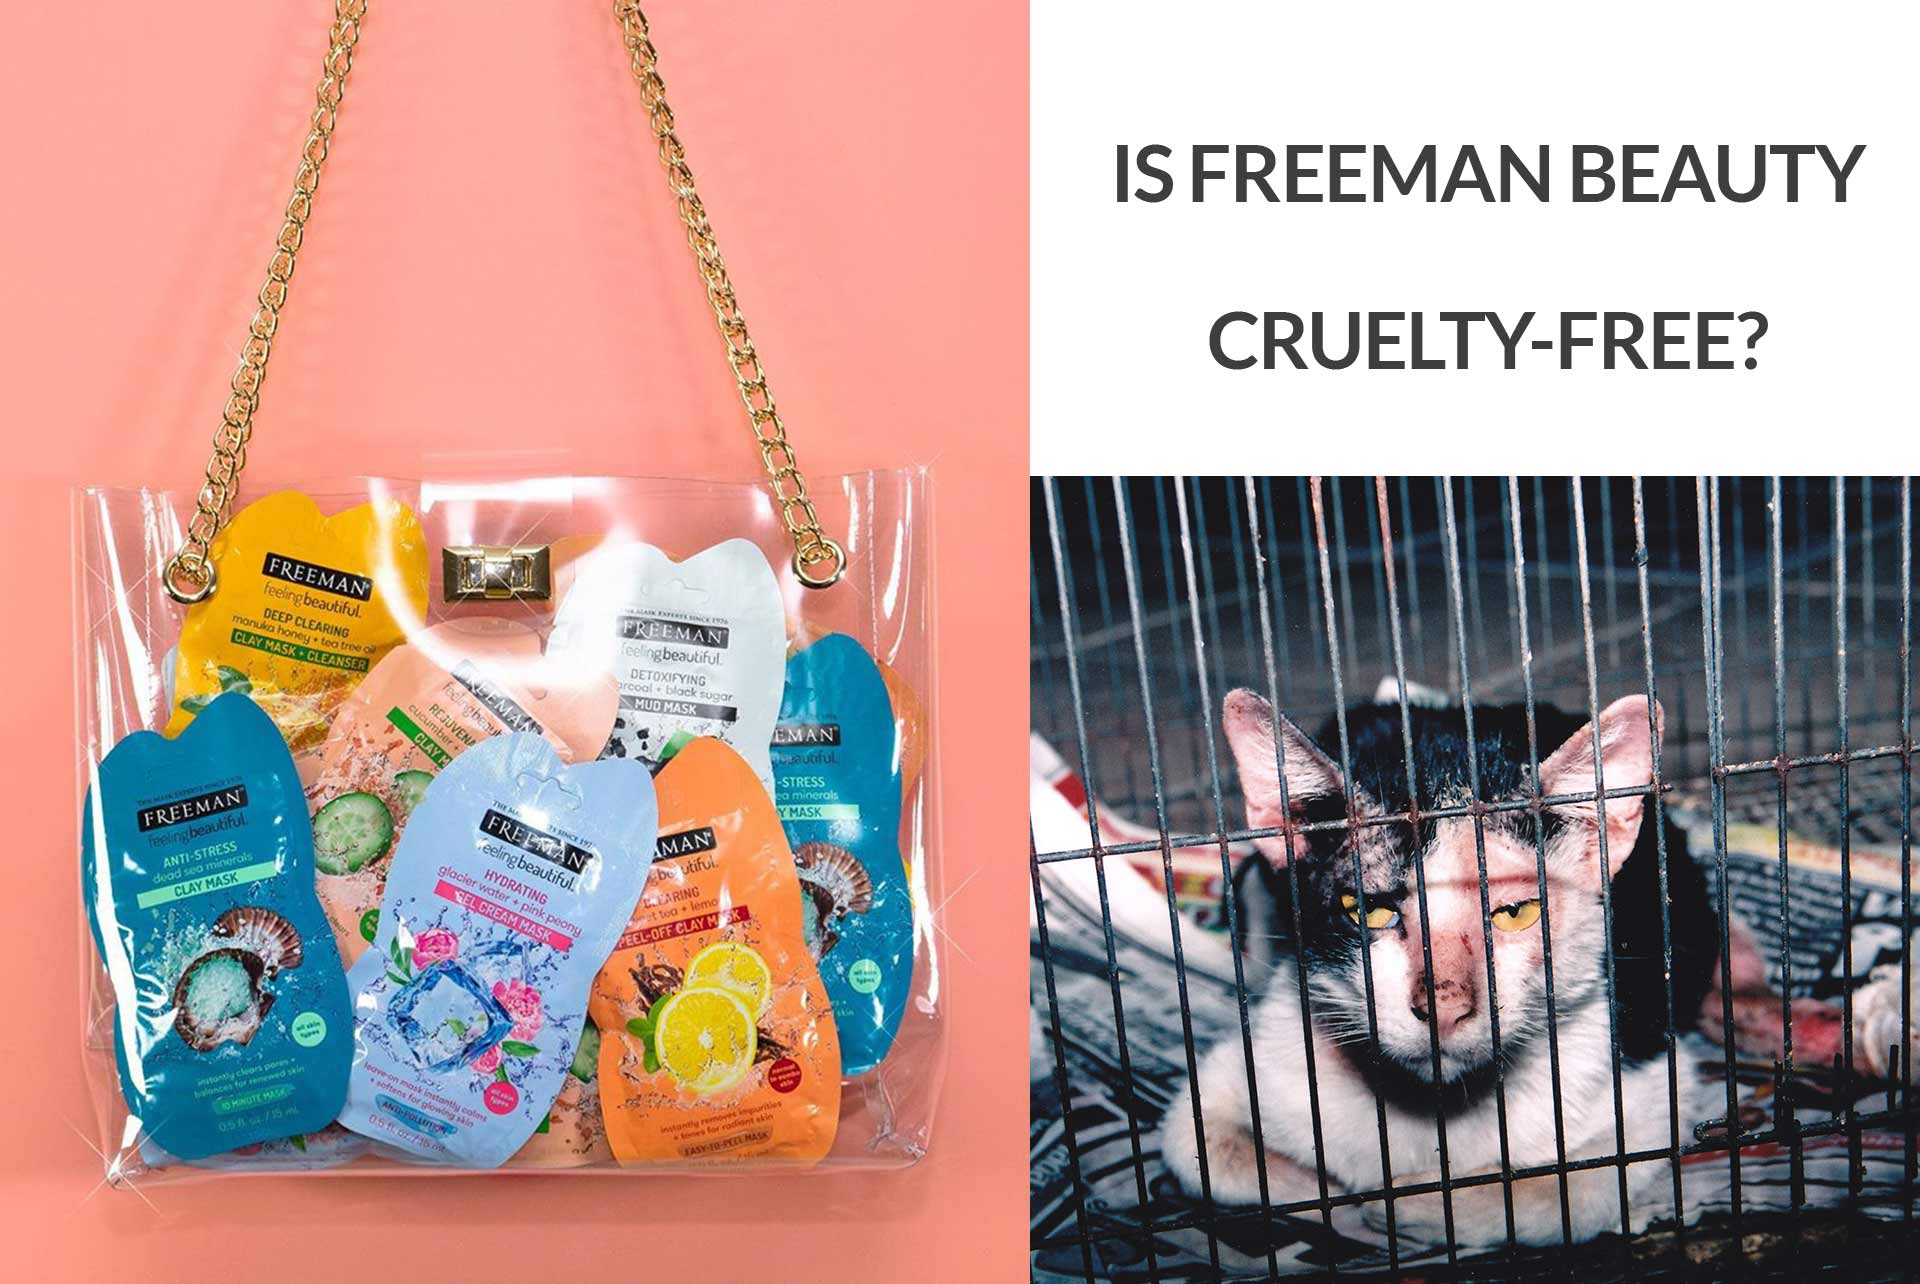 Is Freeman Beauty Cruelty-Free?